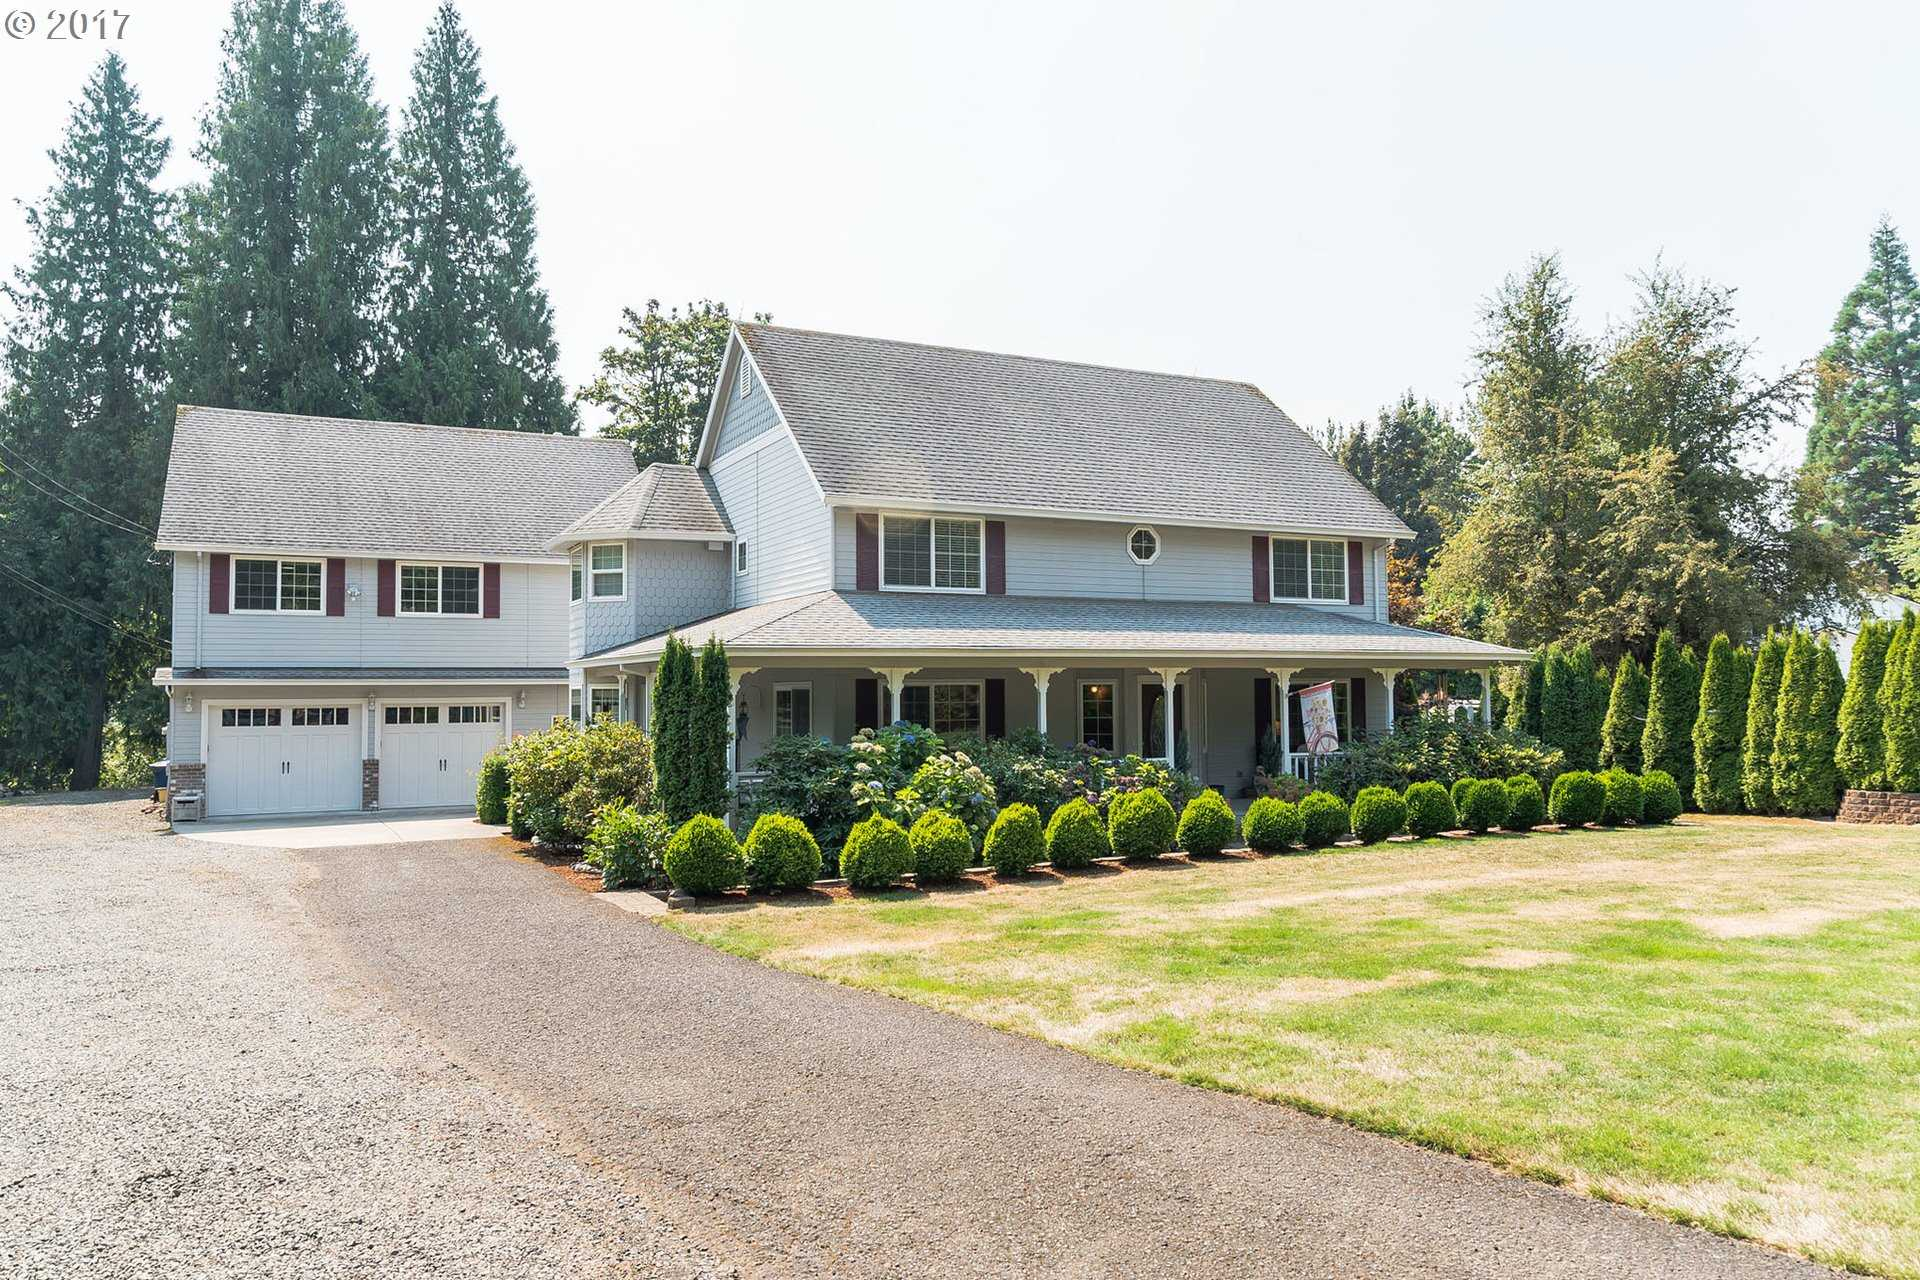 $798,900 - 4Br/4Ba -  for Sale in Troutdale